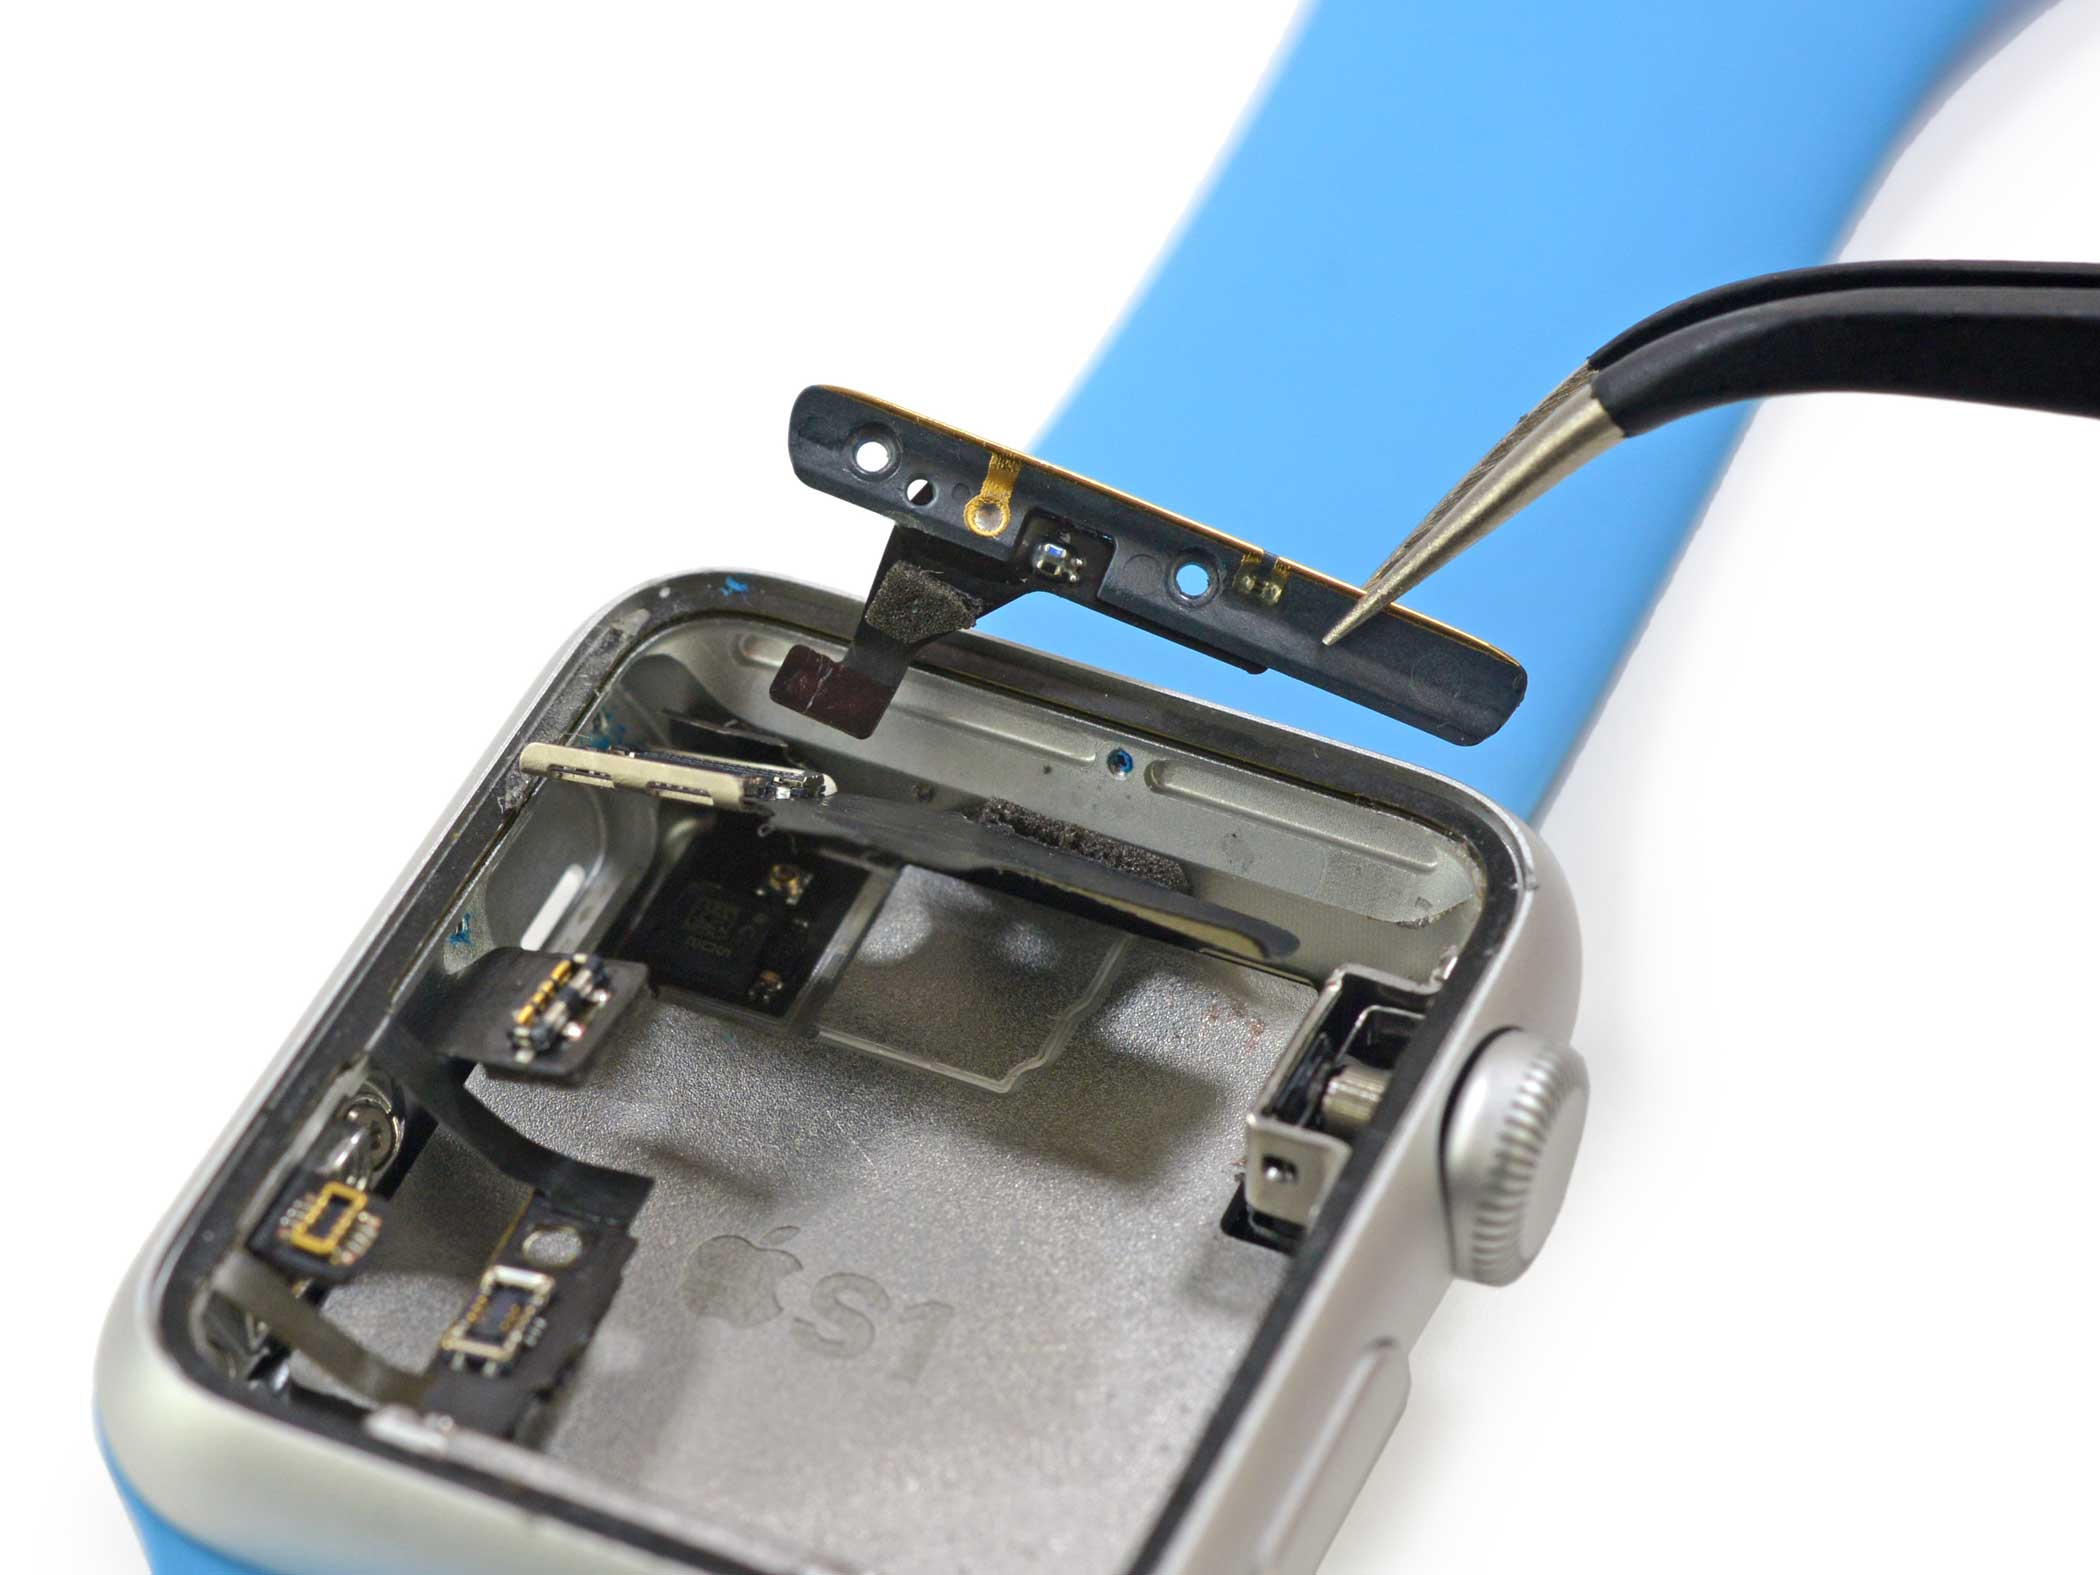 The antenna assembly is removed, which likely controls the watch's Wi-Fi and Bluetooth functionality